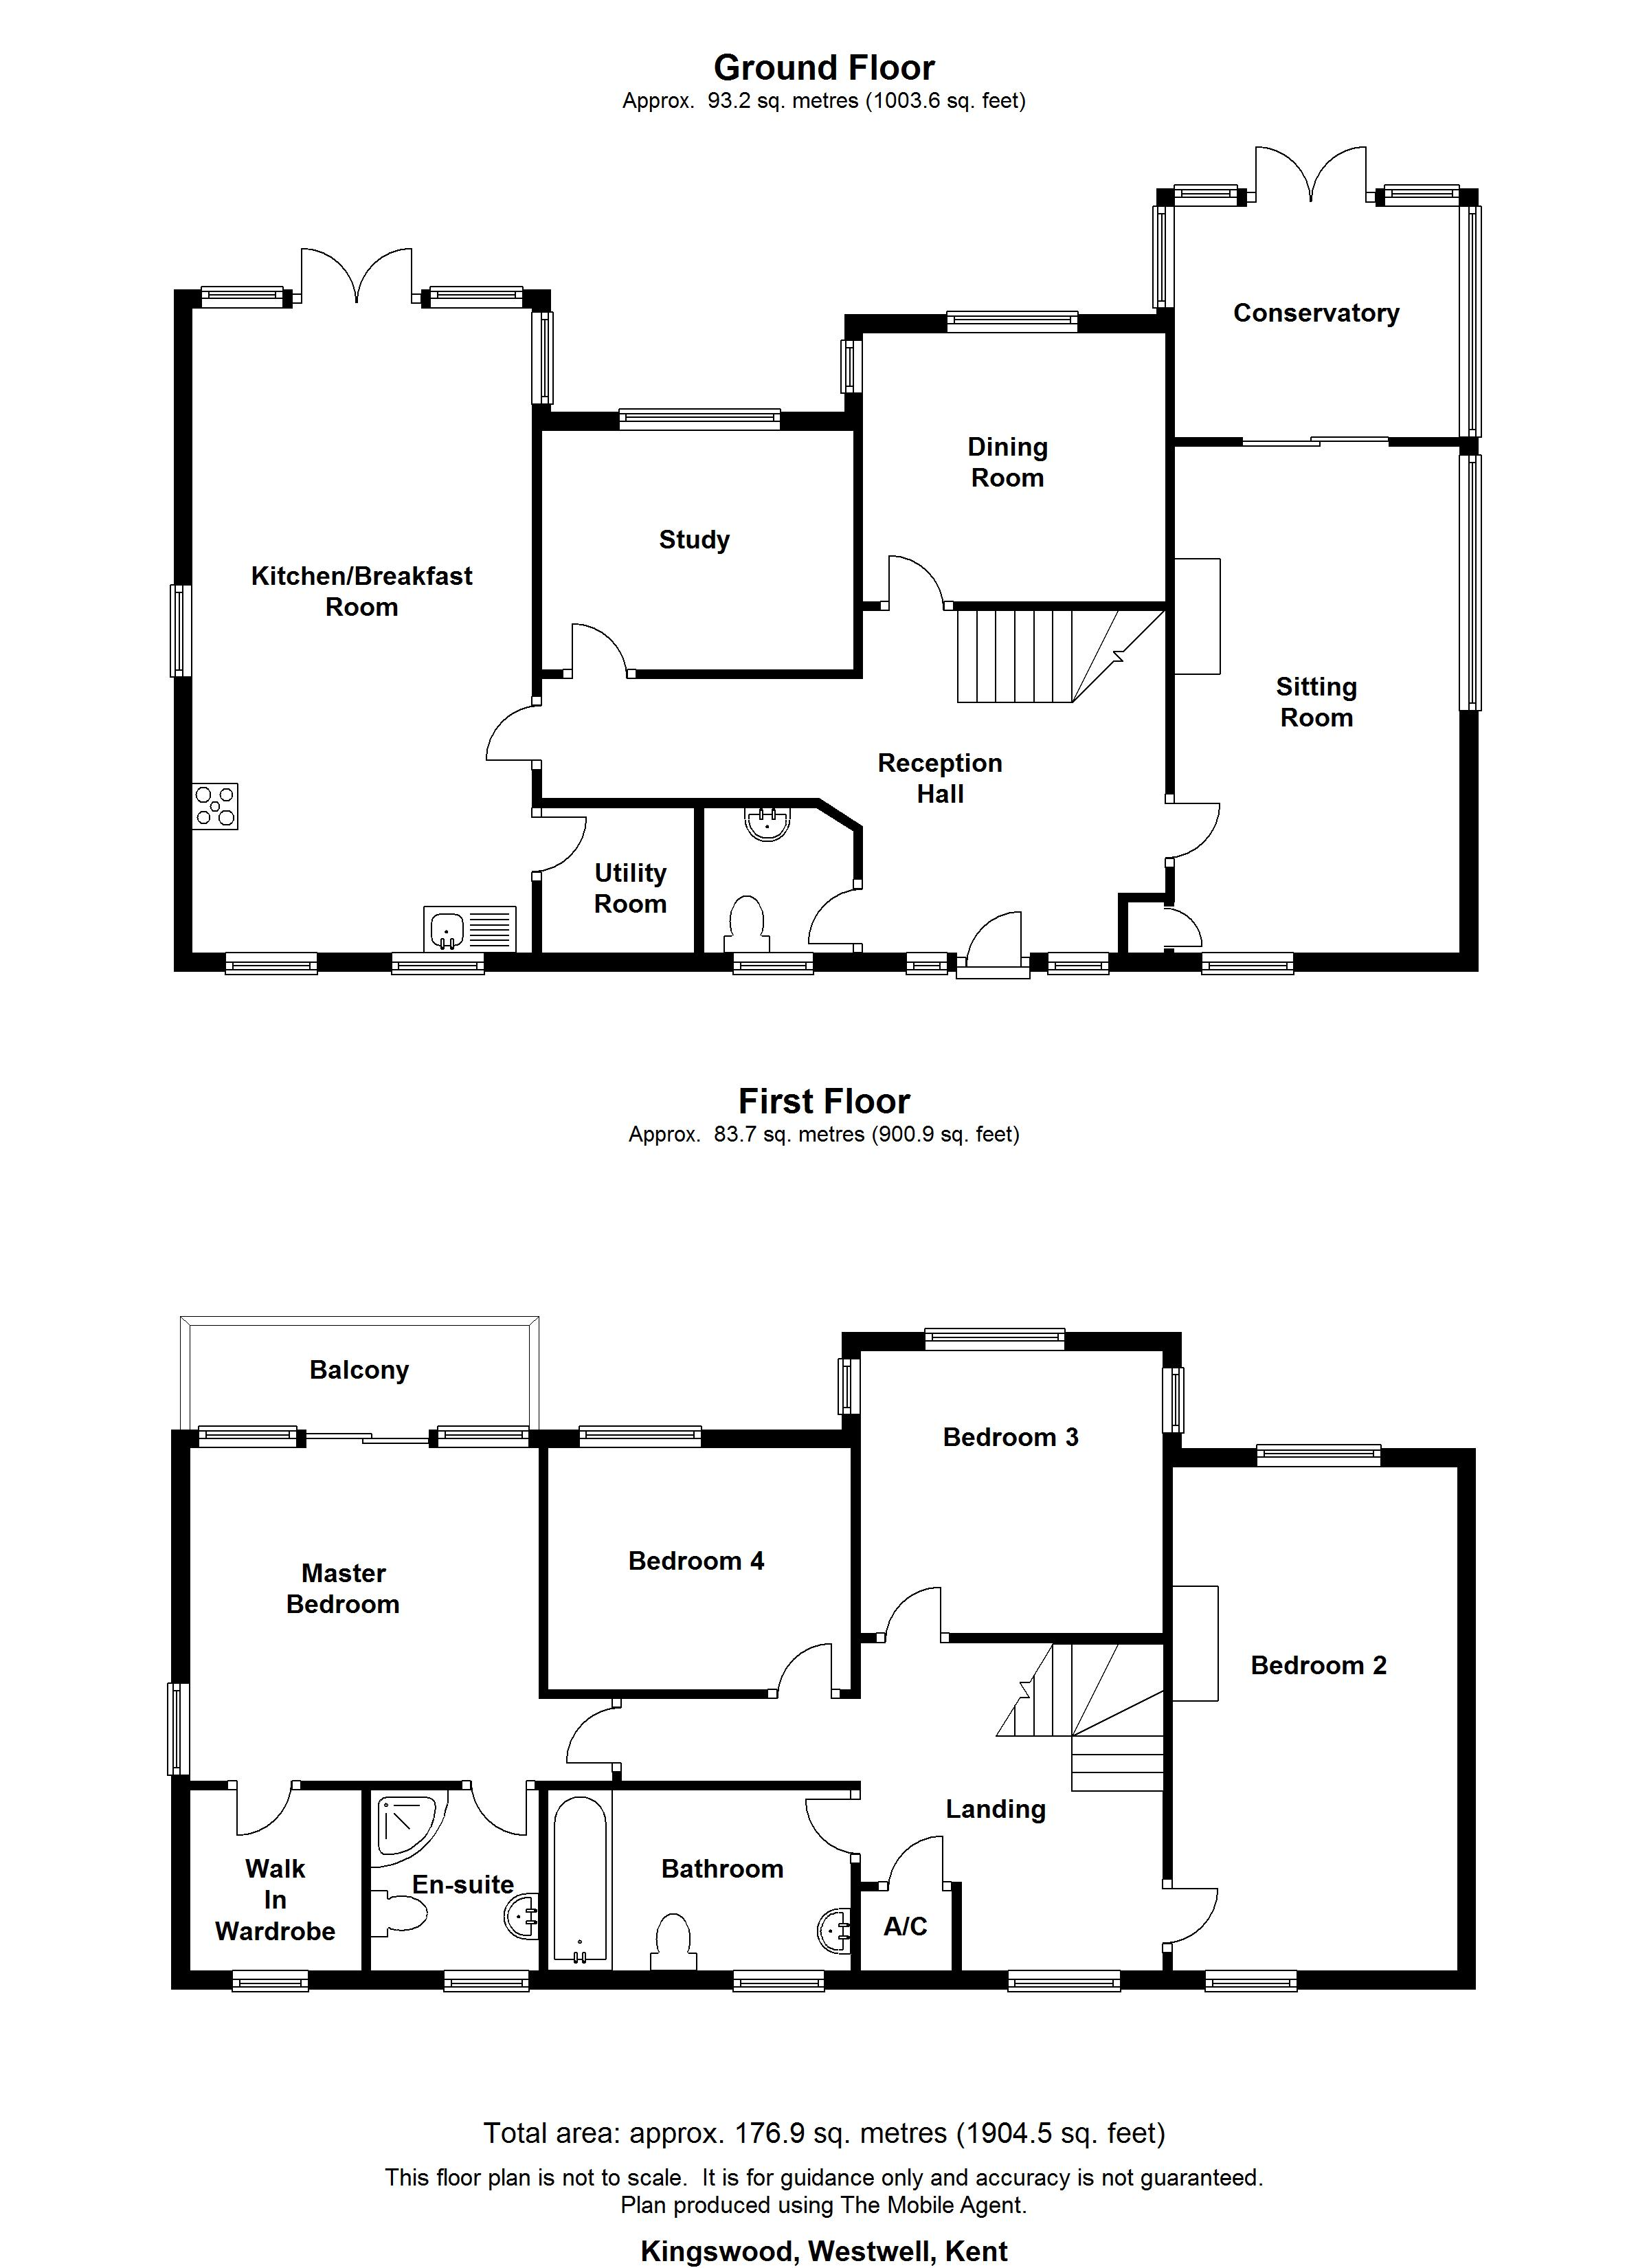 Floorplans For Kingswood, Westwell